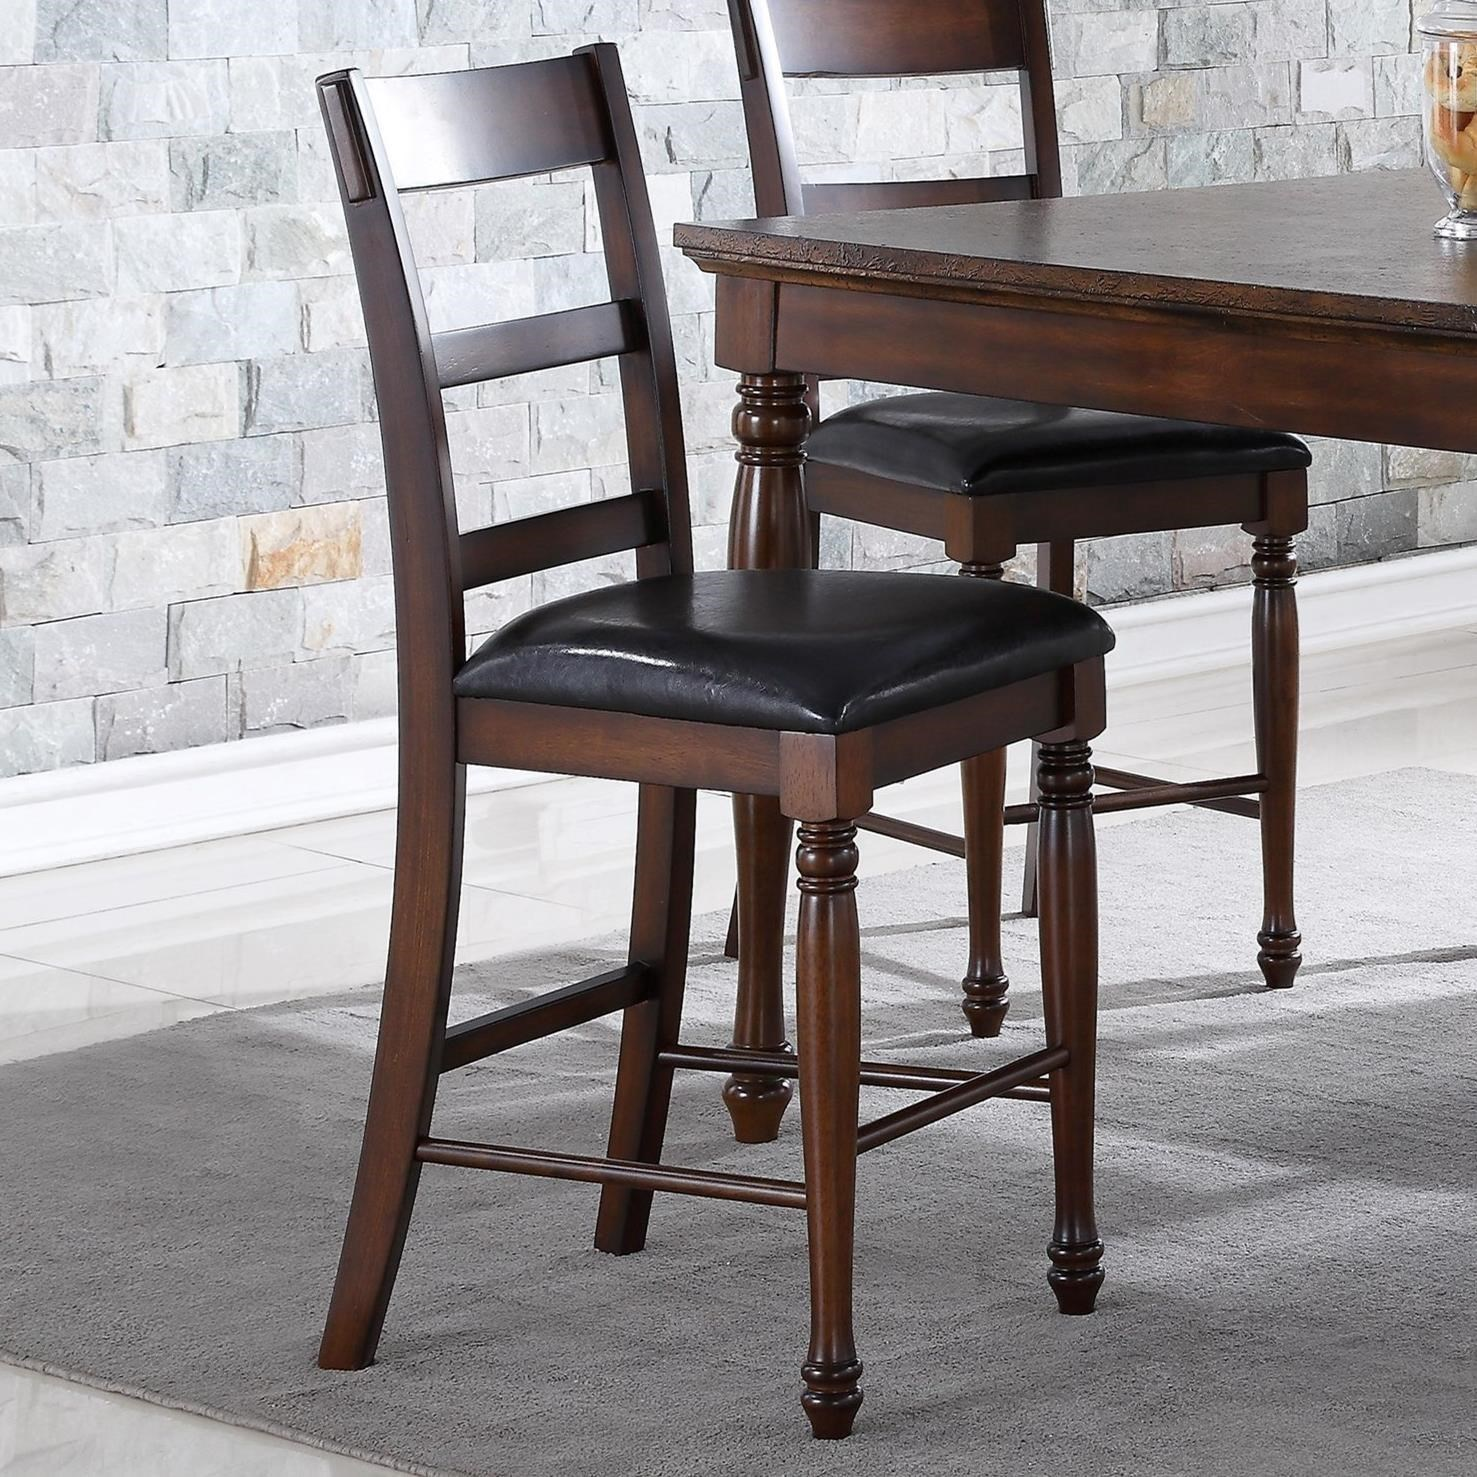 Incroyable Legends Furniture Breckenridge Breckenridge Counter Height Stool With  Upholstered Seat